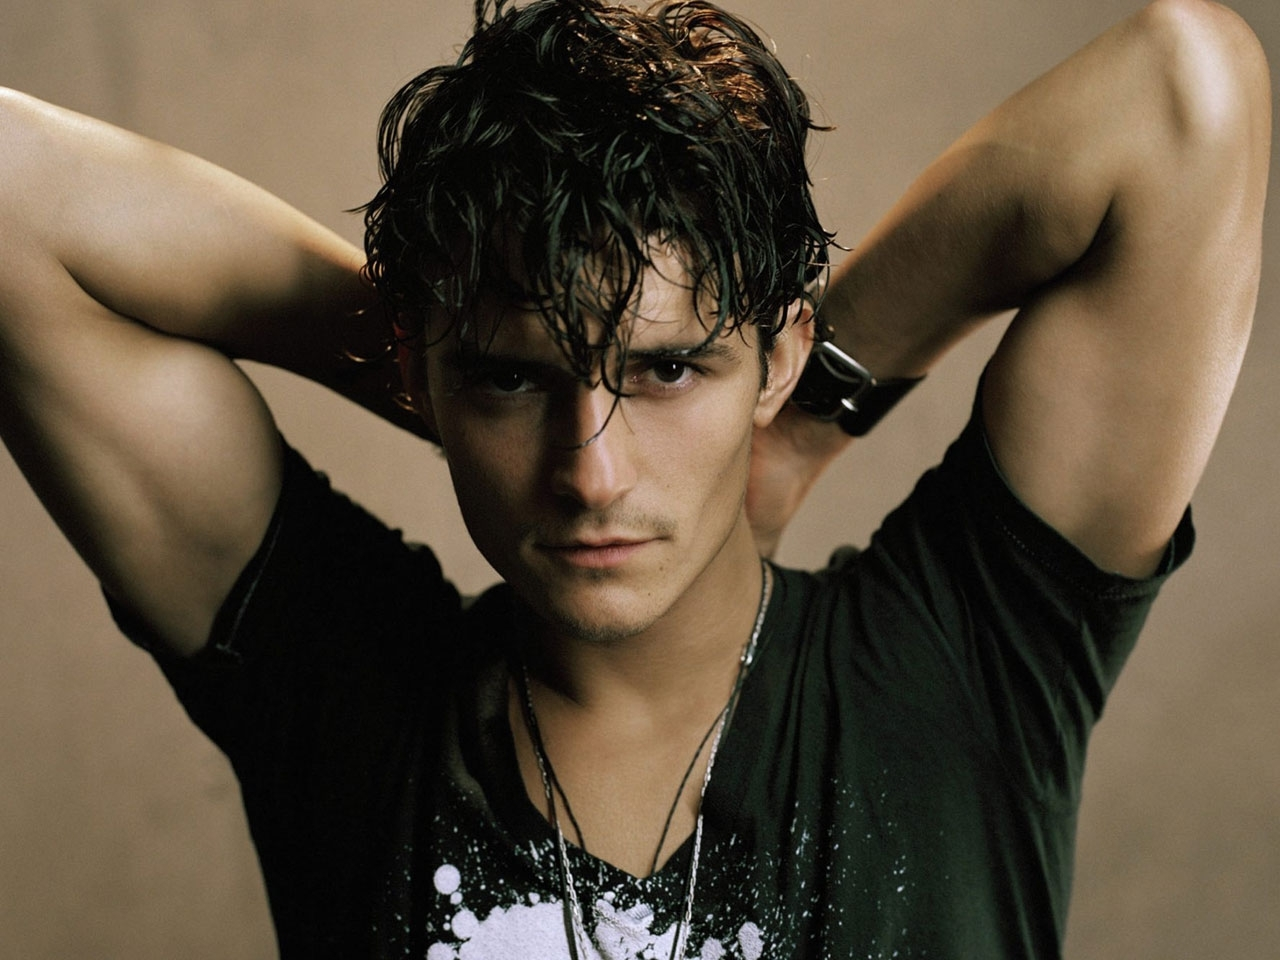 49911 download wallpaper People, Men, Orlando Bloom screensavers and pictures for free